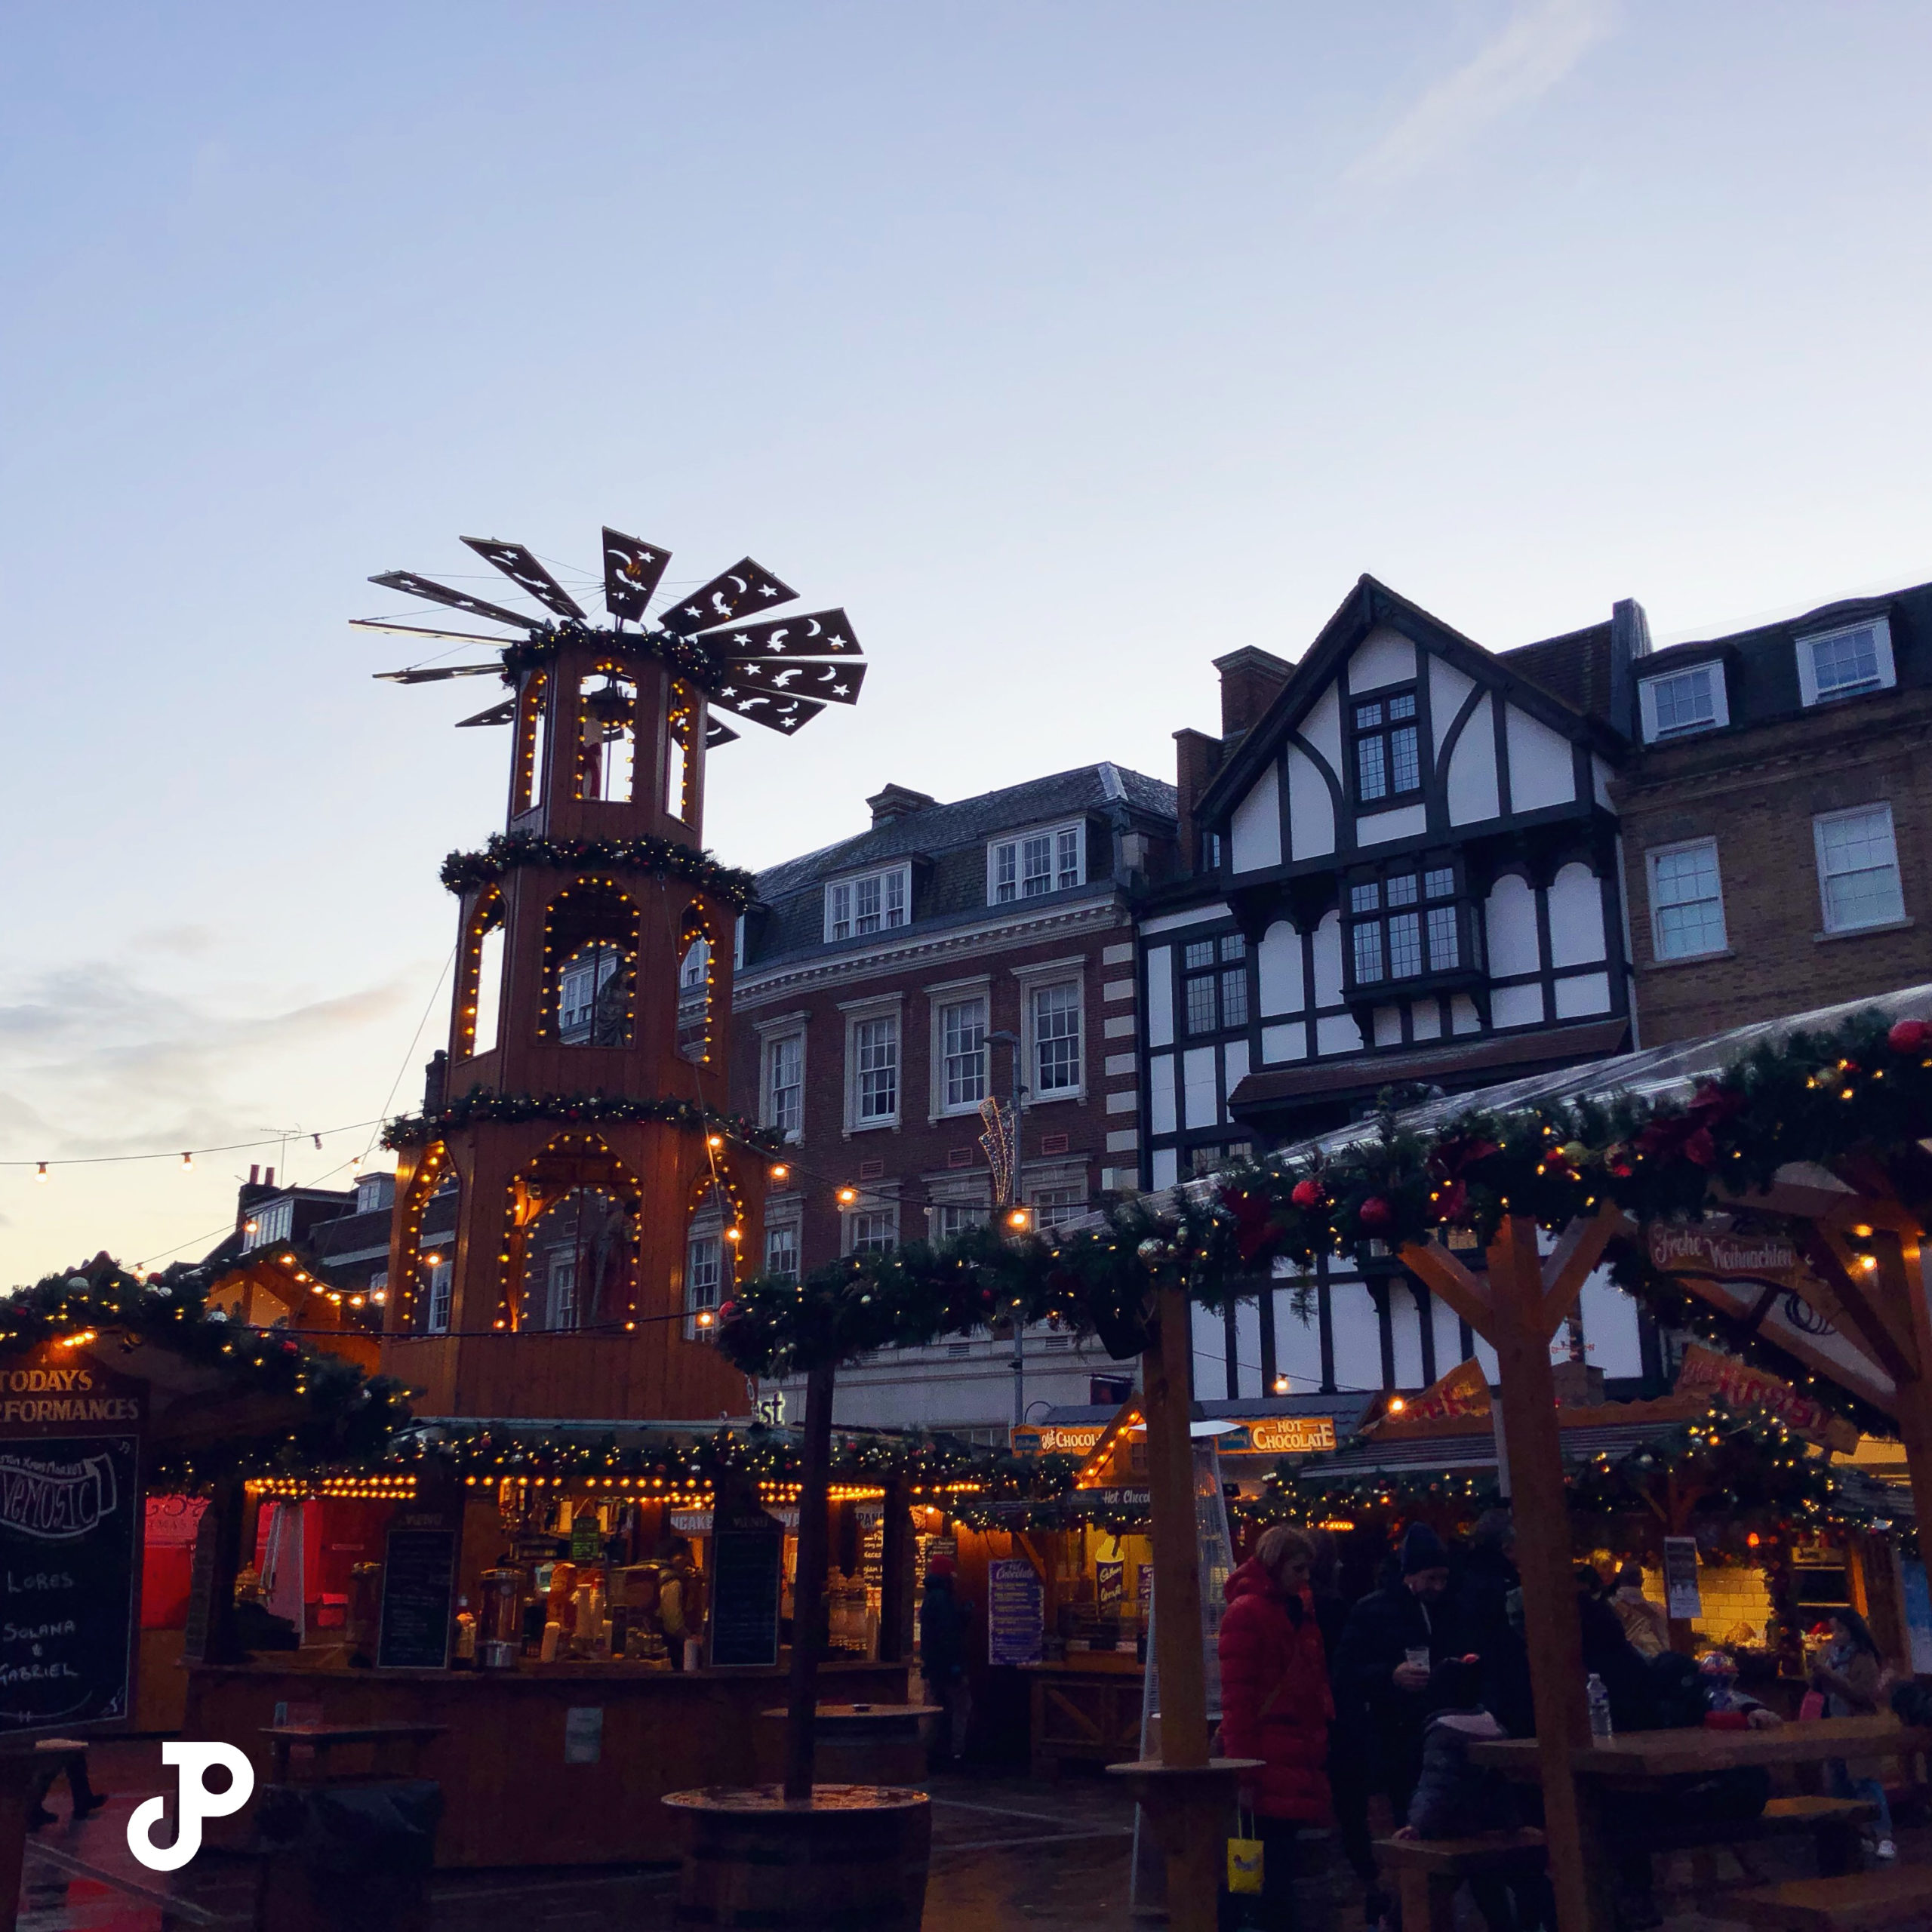 a Christmas market in Kingston Upon Thames, London